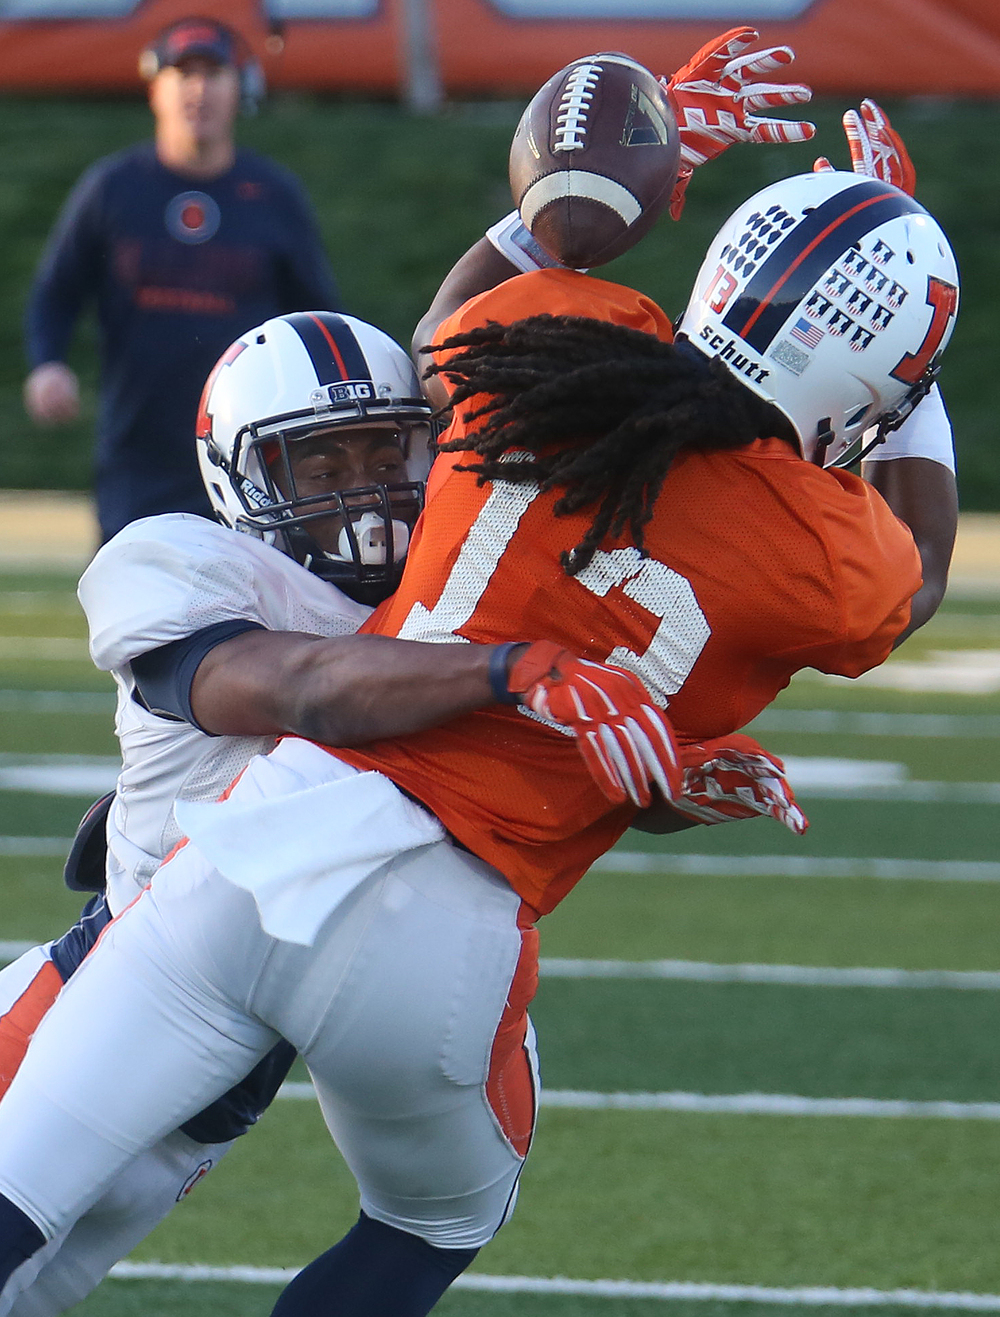 The Illini's Eaton Spence breaks up a pass intended for receiver Dionte Taylor. David Spencer/The State Journal Register